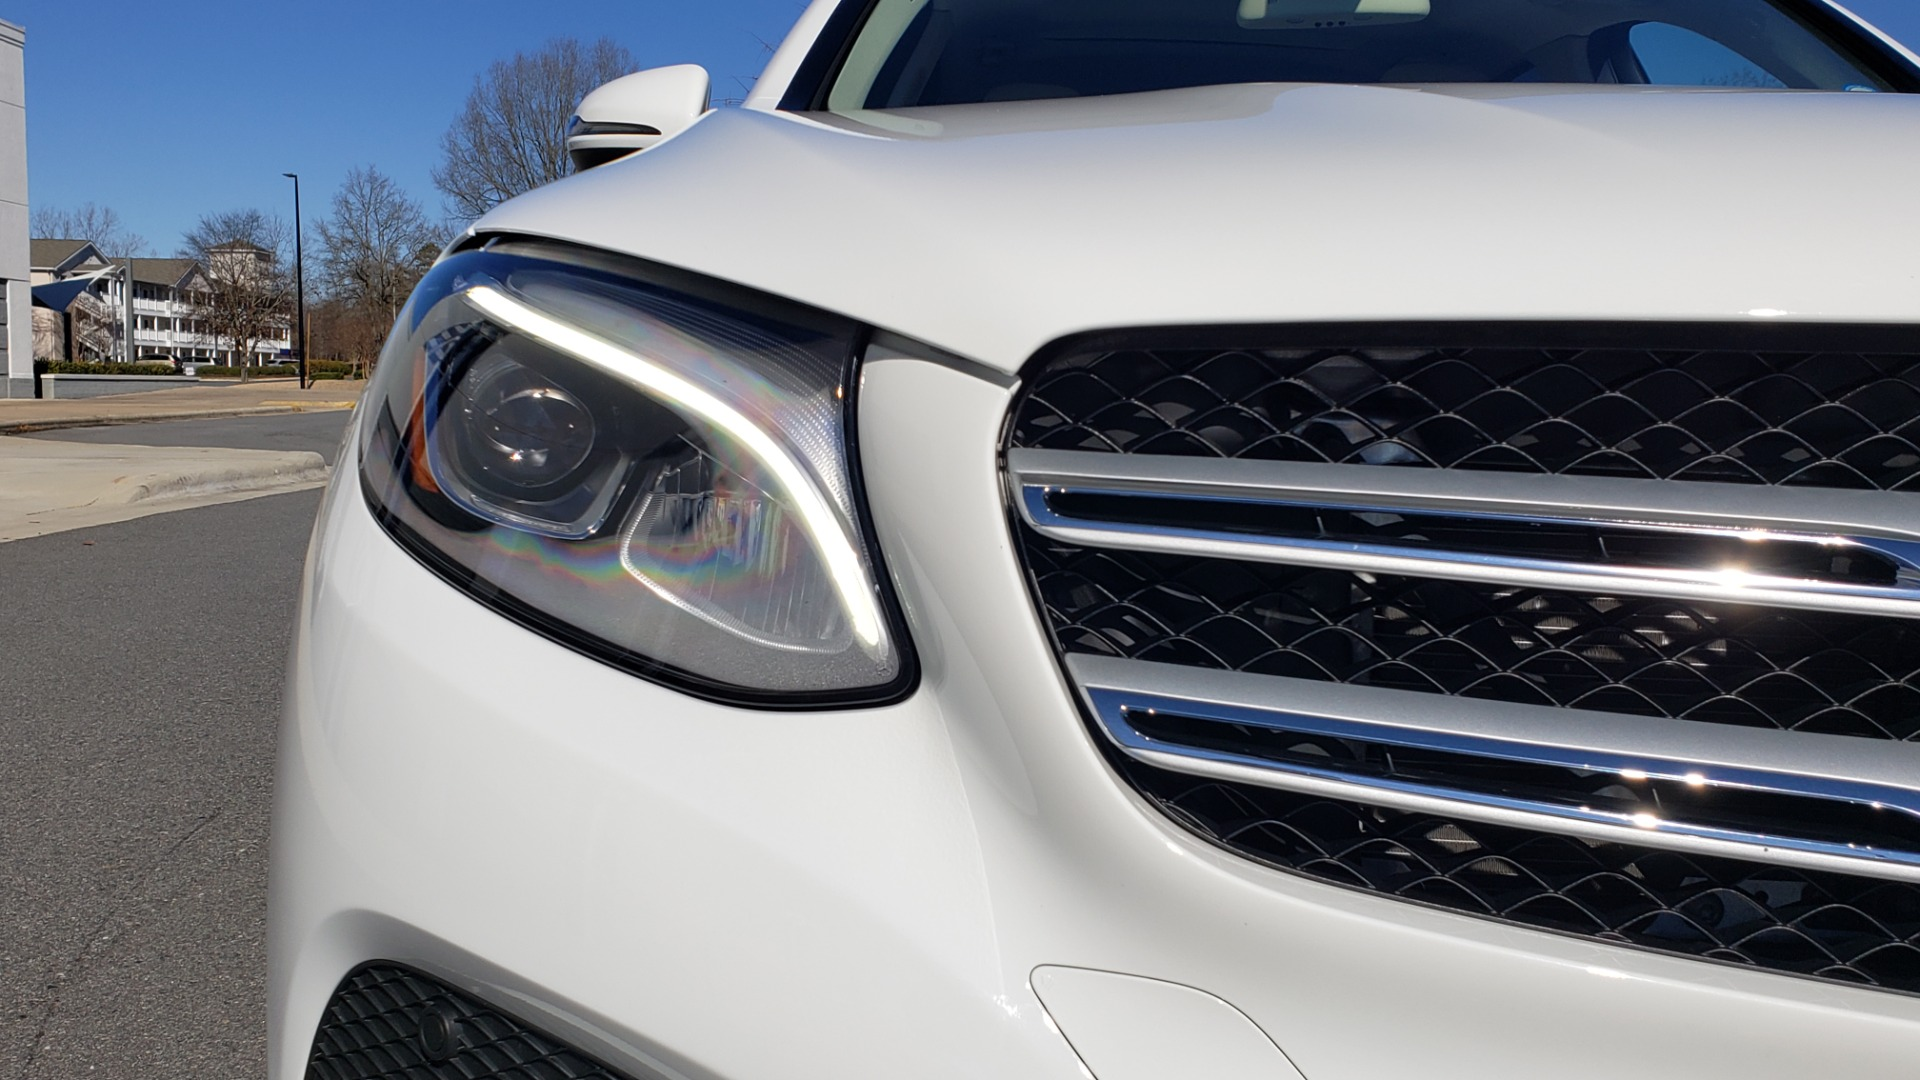 Used 2018 Mercedes-Benz GLC 300 4MATIC / PREM PKG / NAV / SUNROOF / REARVIEW for sale $36,995 at Formula Imports in Charlotte NC 28227 25